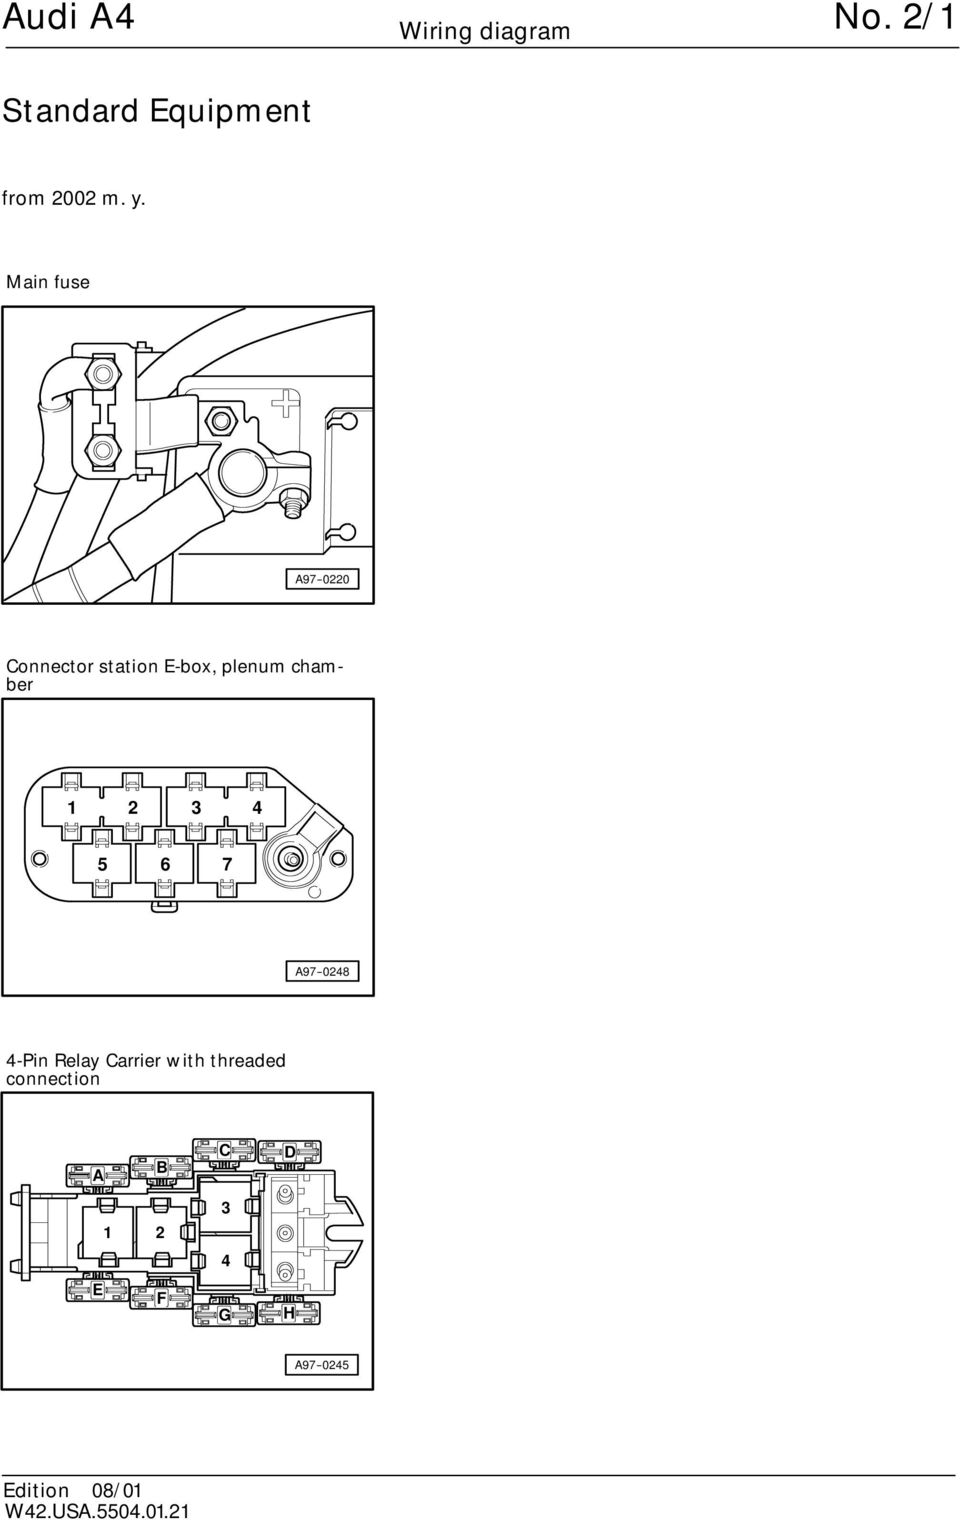 Audi A4 No 2 1 Standard Equipment Wiring Diagram From 2002 M Y Cabriolet Chamber 4 5 6 7 A97 048 Pin Relay Carrier W Ith